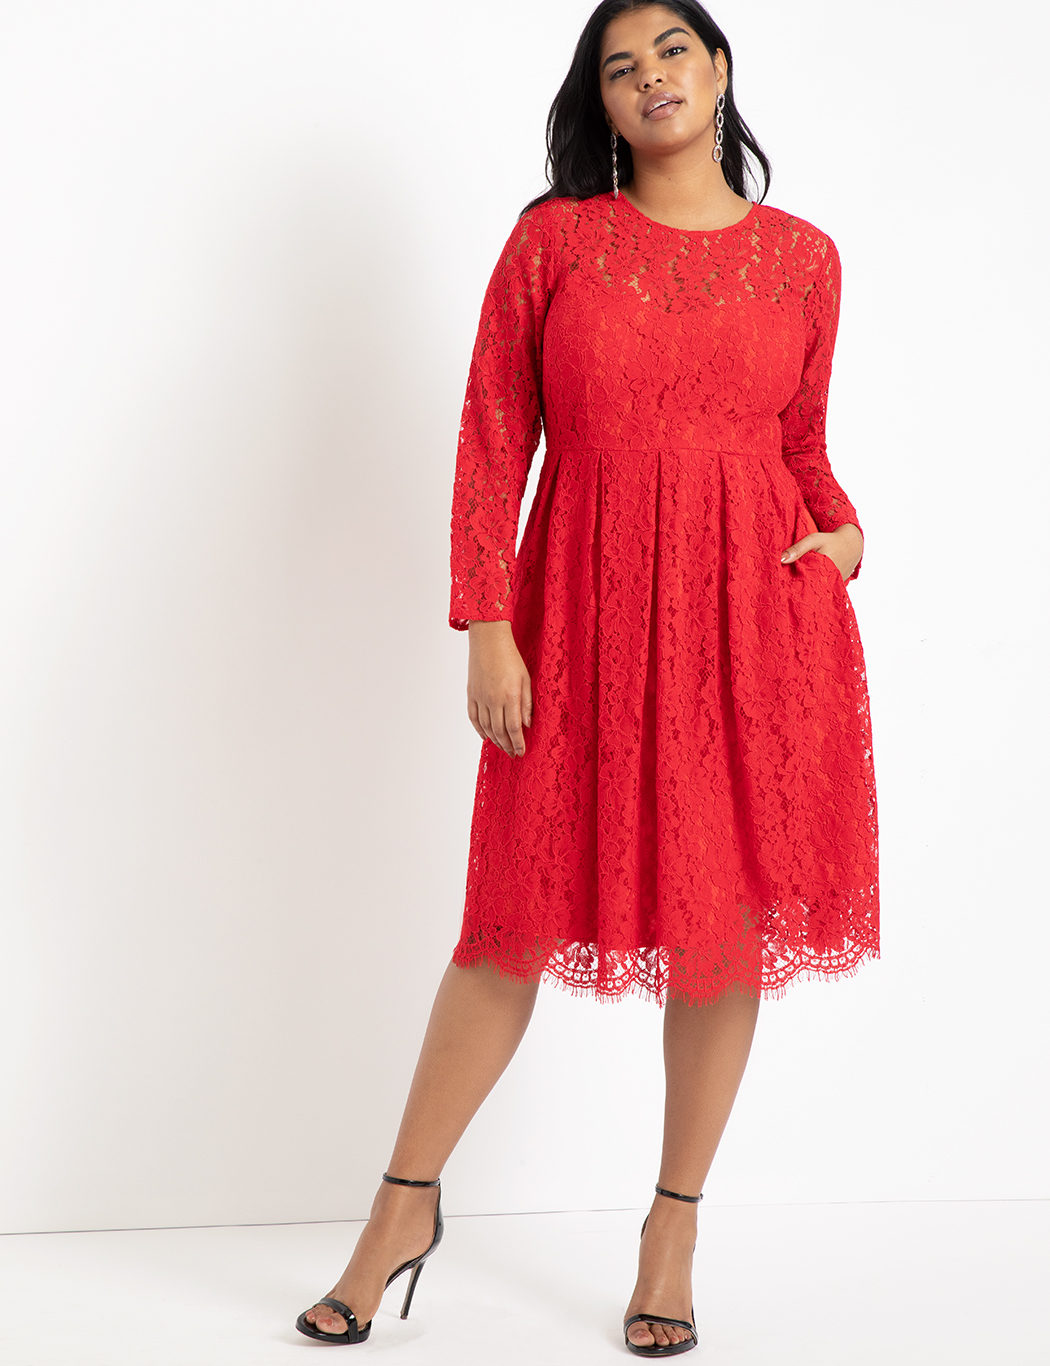 Lace Fit and Flare Dress | Women\'s Plus Size Dresses | ELOQUII